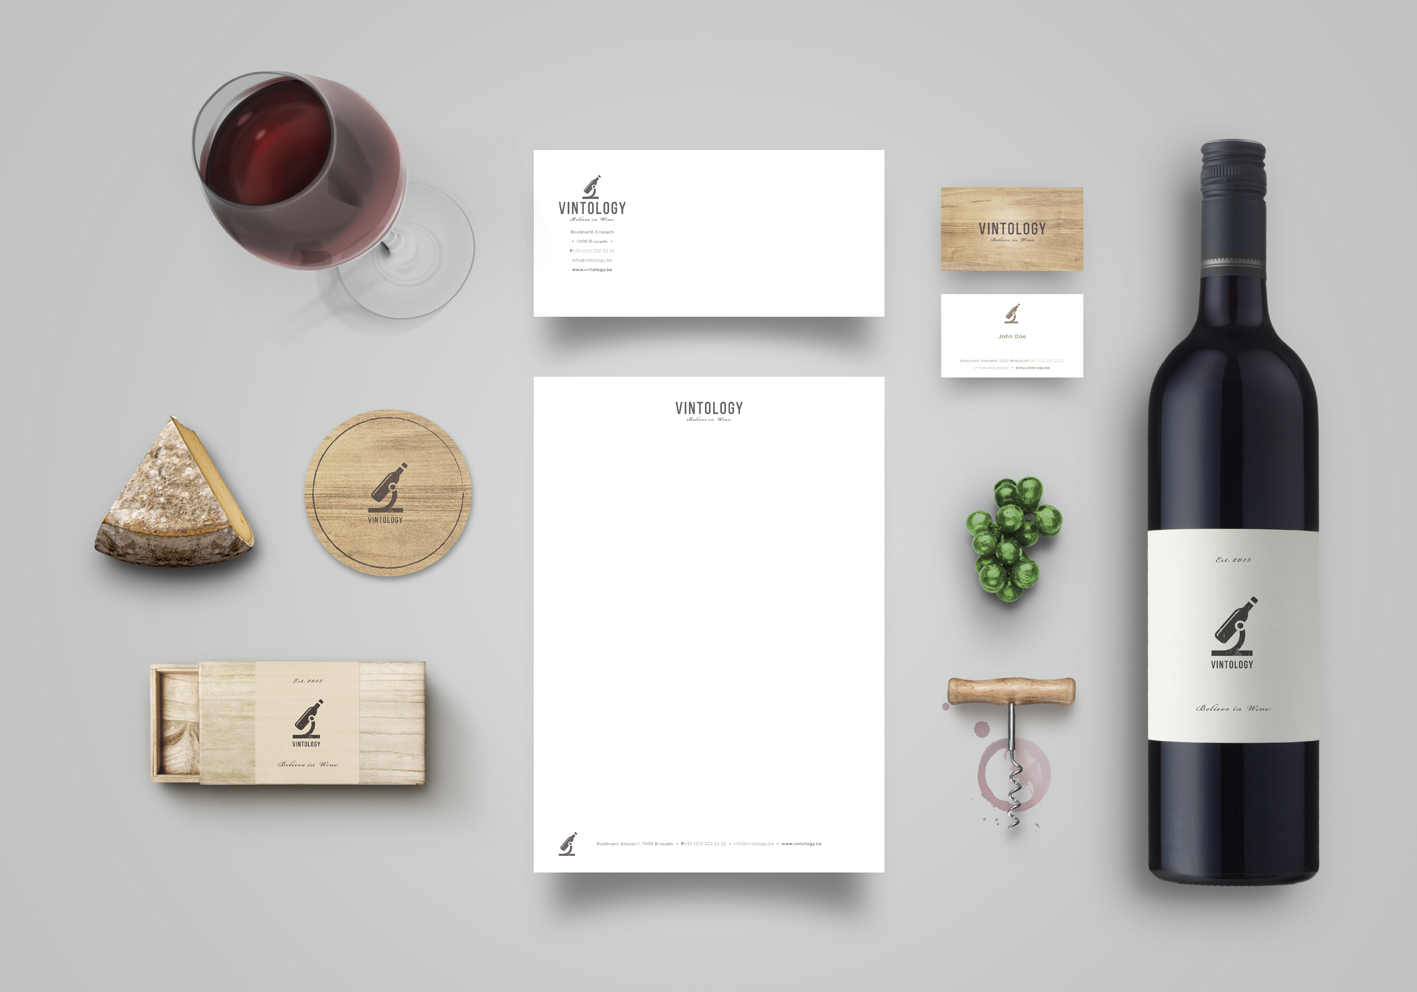 Brand identity pack by emretoksan for Vintology